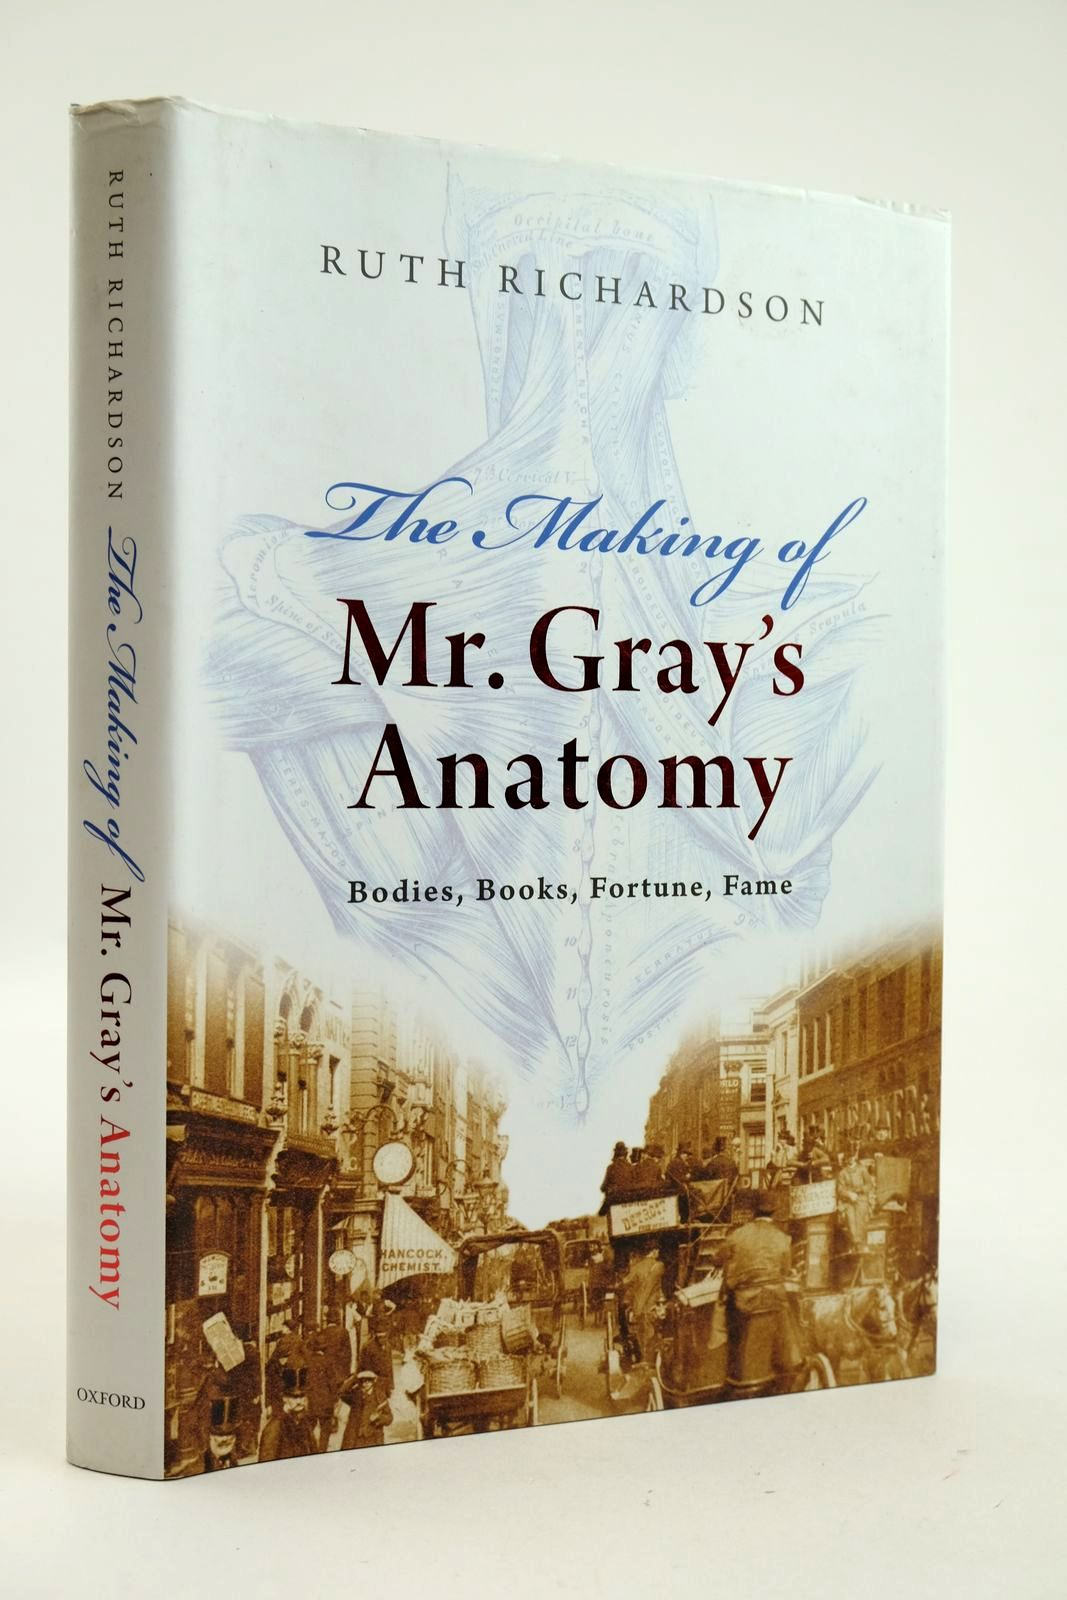 Photo of THE MAKING OF MR. GRAY'S ANATOMY written by Richardson, Ruth published by Oxford University Press (STOCK CODE: 2132946)  for sale by Stella & Rose's Books